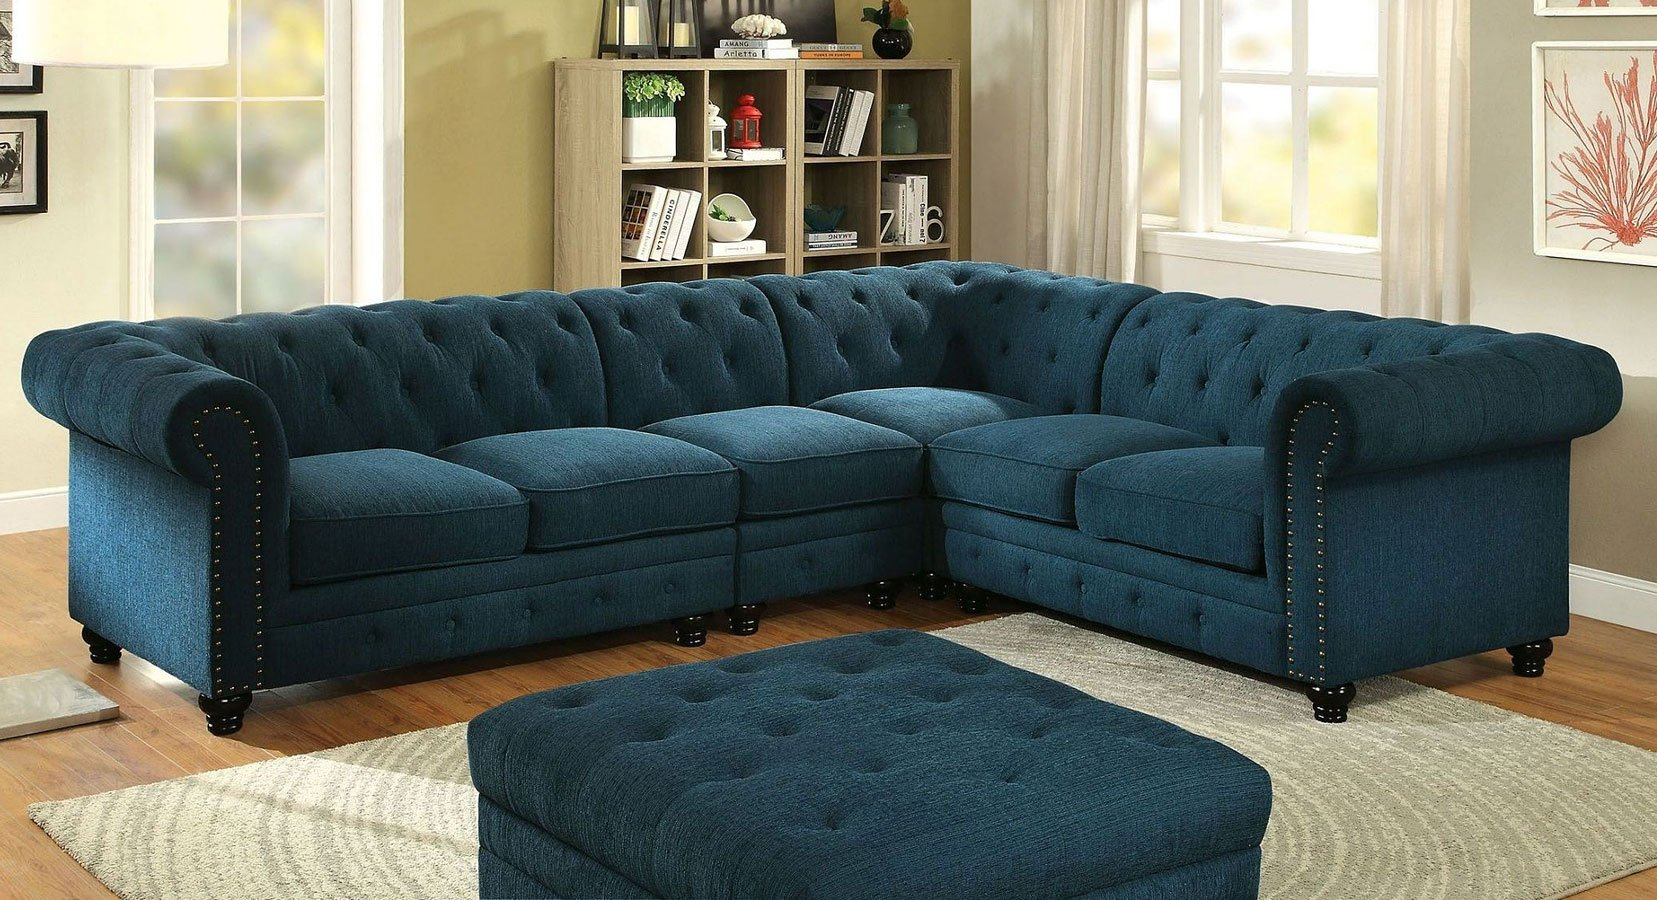 Stanford Sectional Living Room Set Teal By Furniture Of